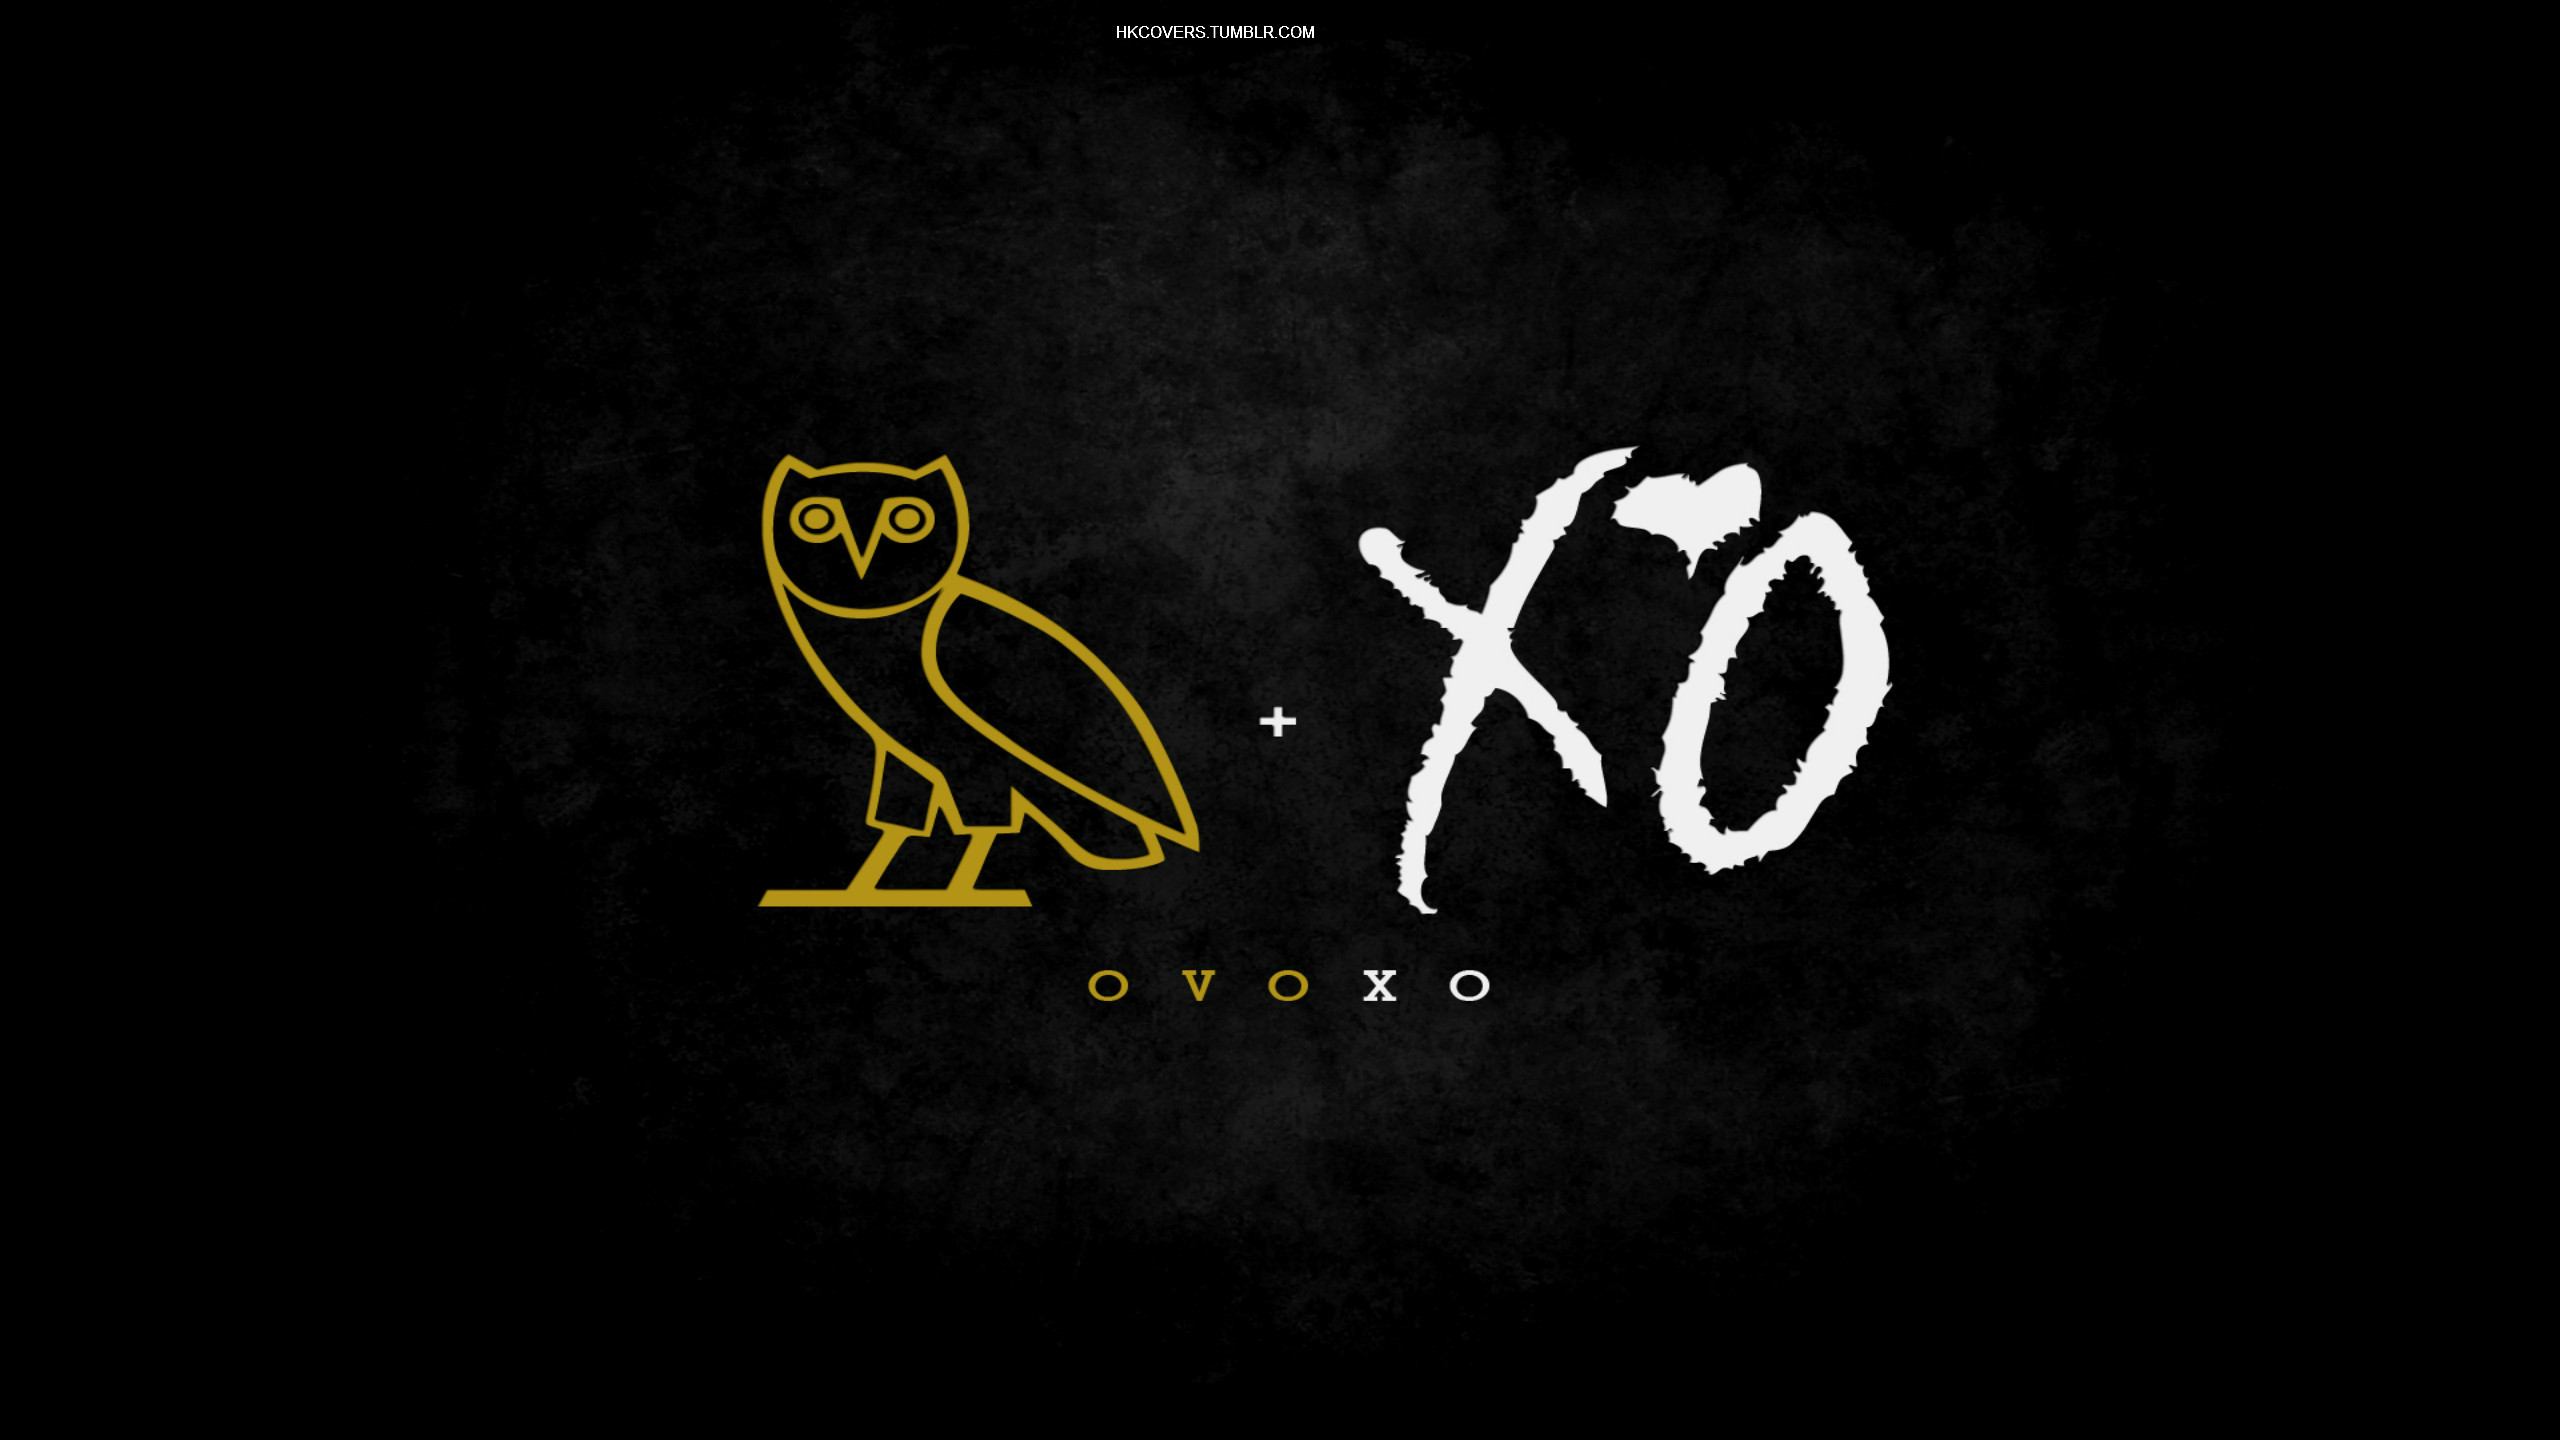 ovoxo wallpapers 183��